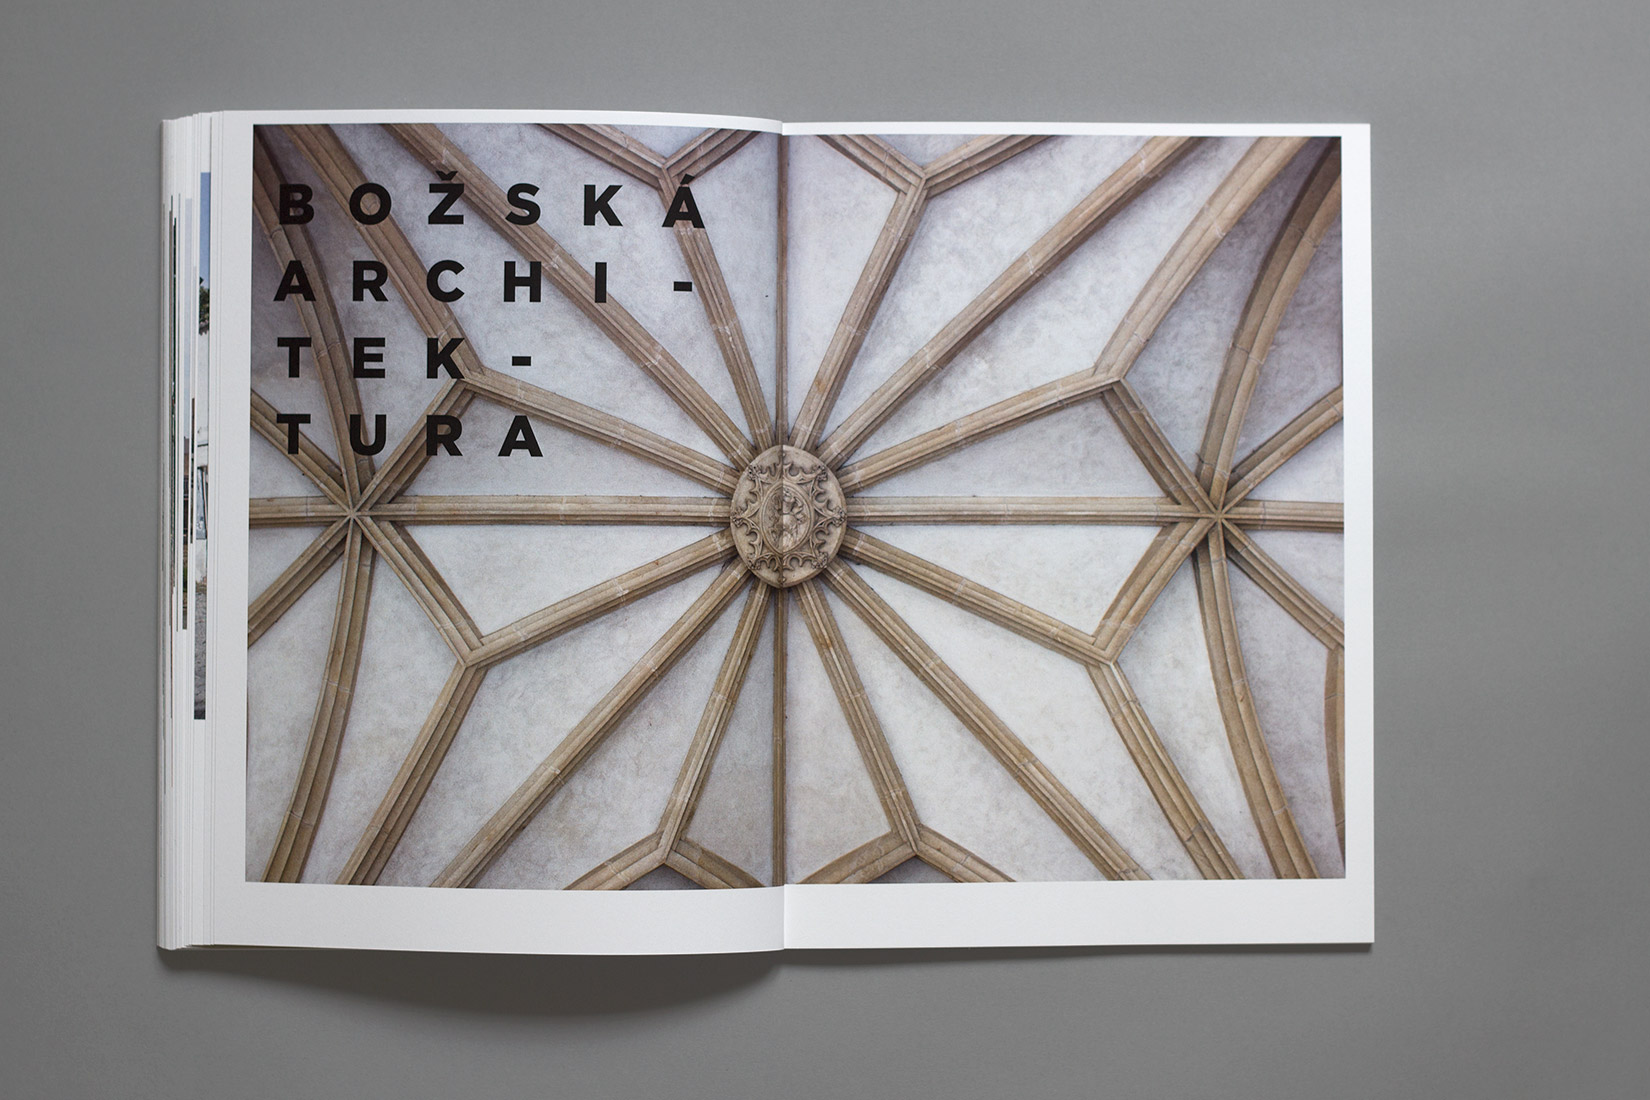 Study trip, book, Brno, architecture, geometry, Gotham, typography, typeface